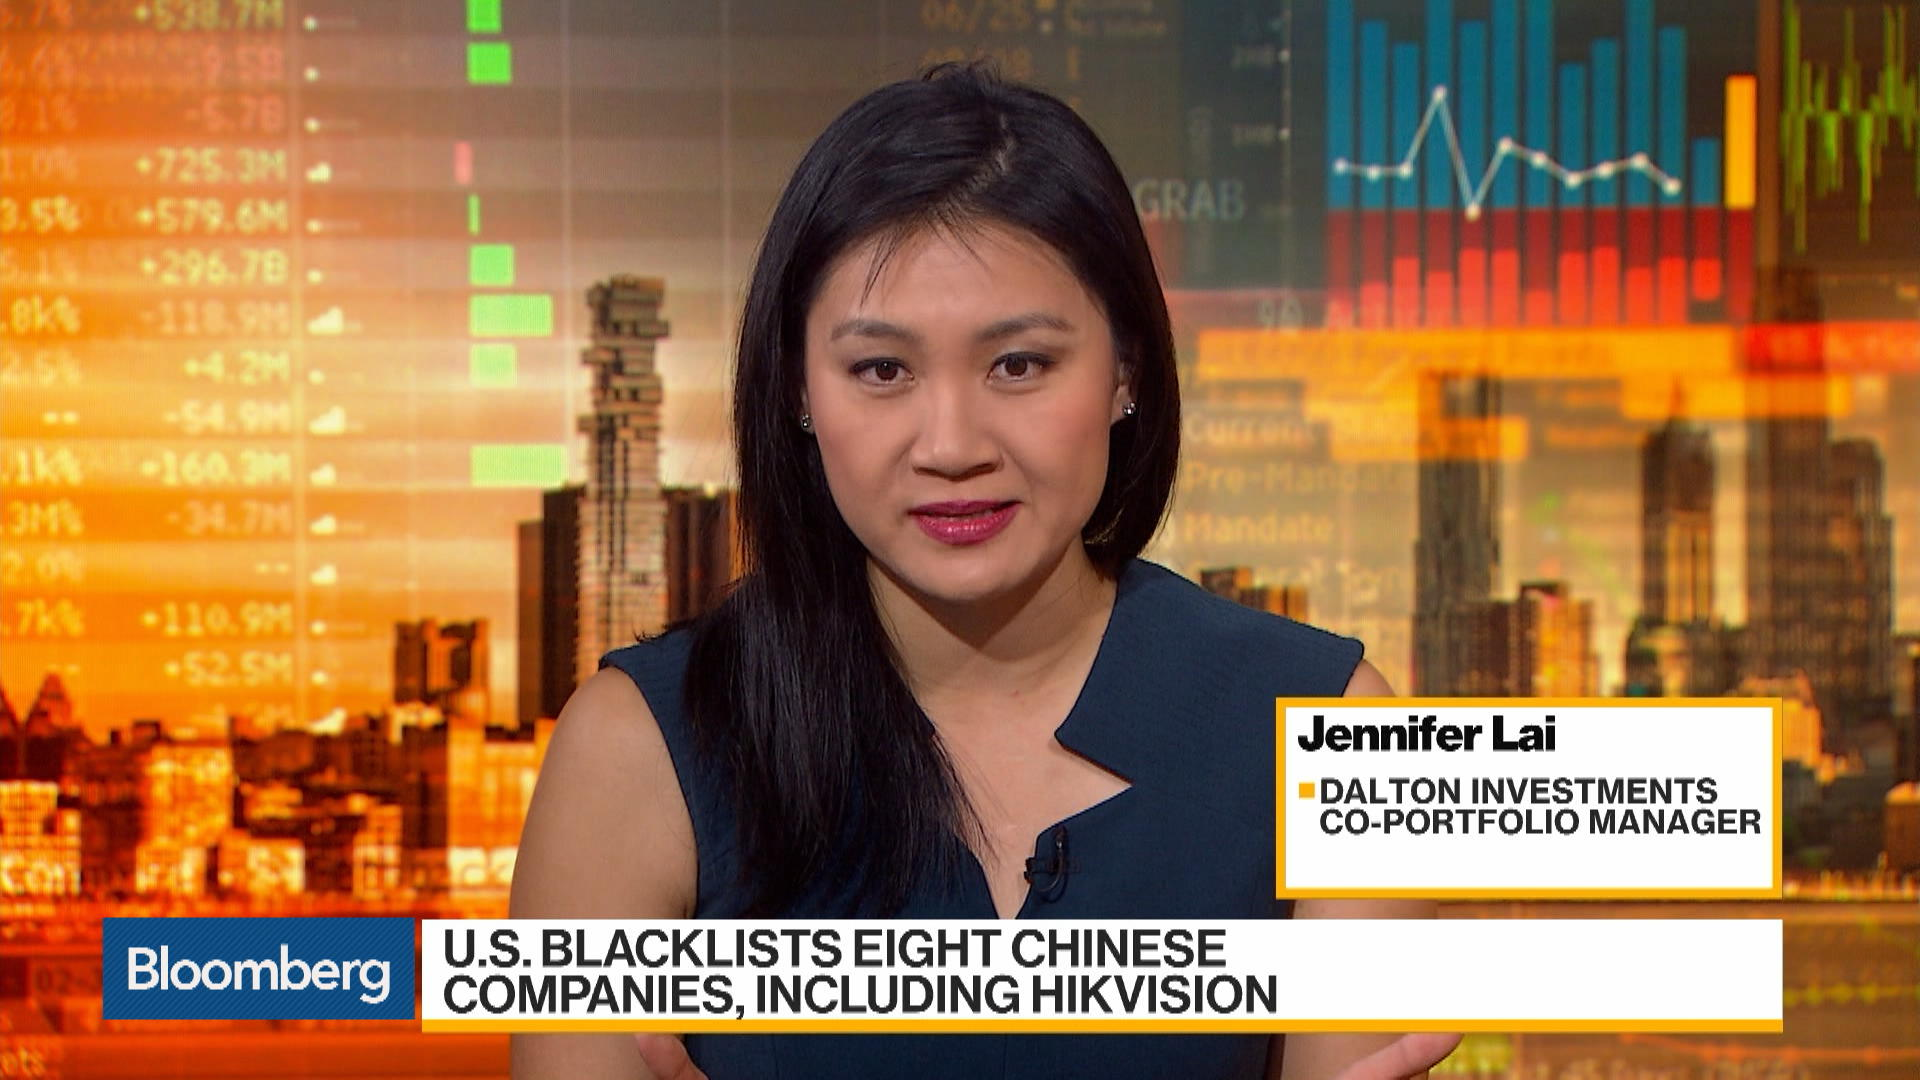 Jennifer Lai, Co-Portfolio Manager at Dalton Investments, on Chinese Stocks, Economy